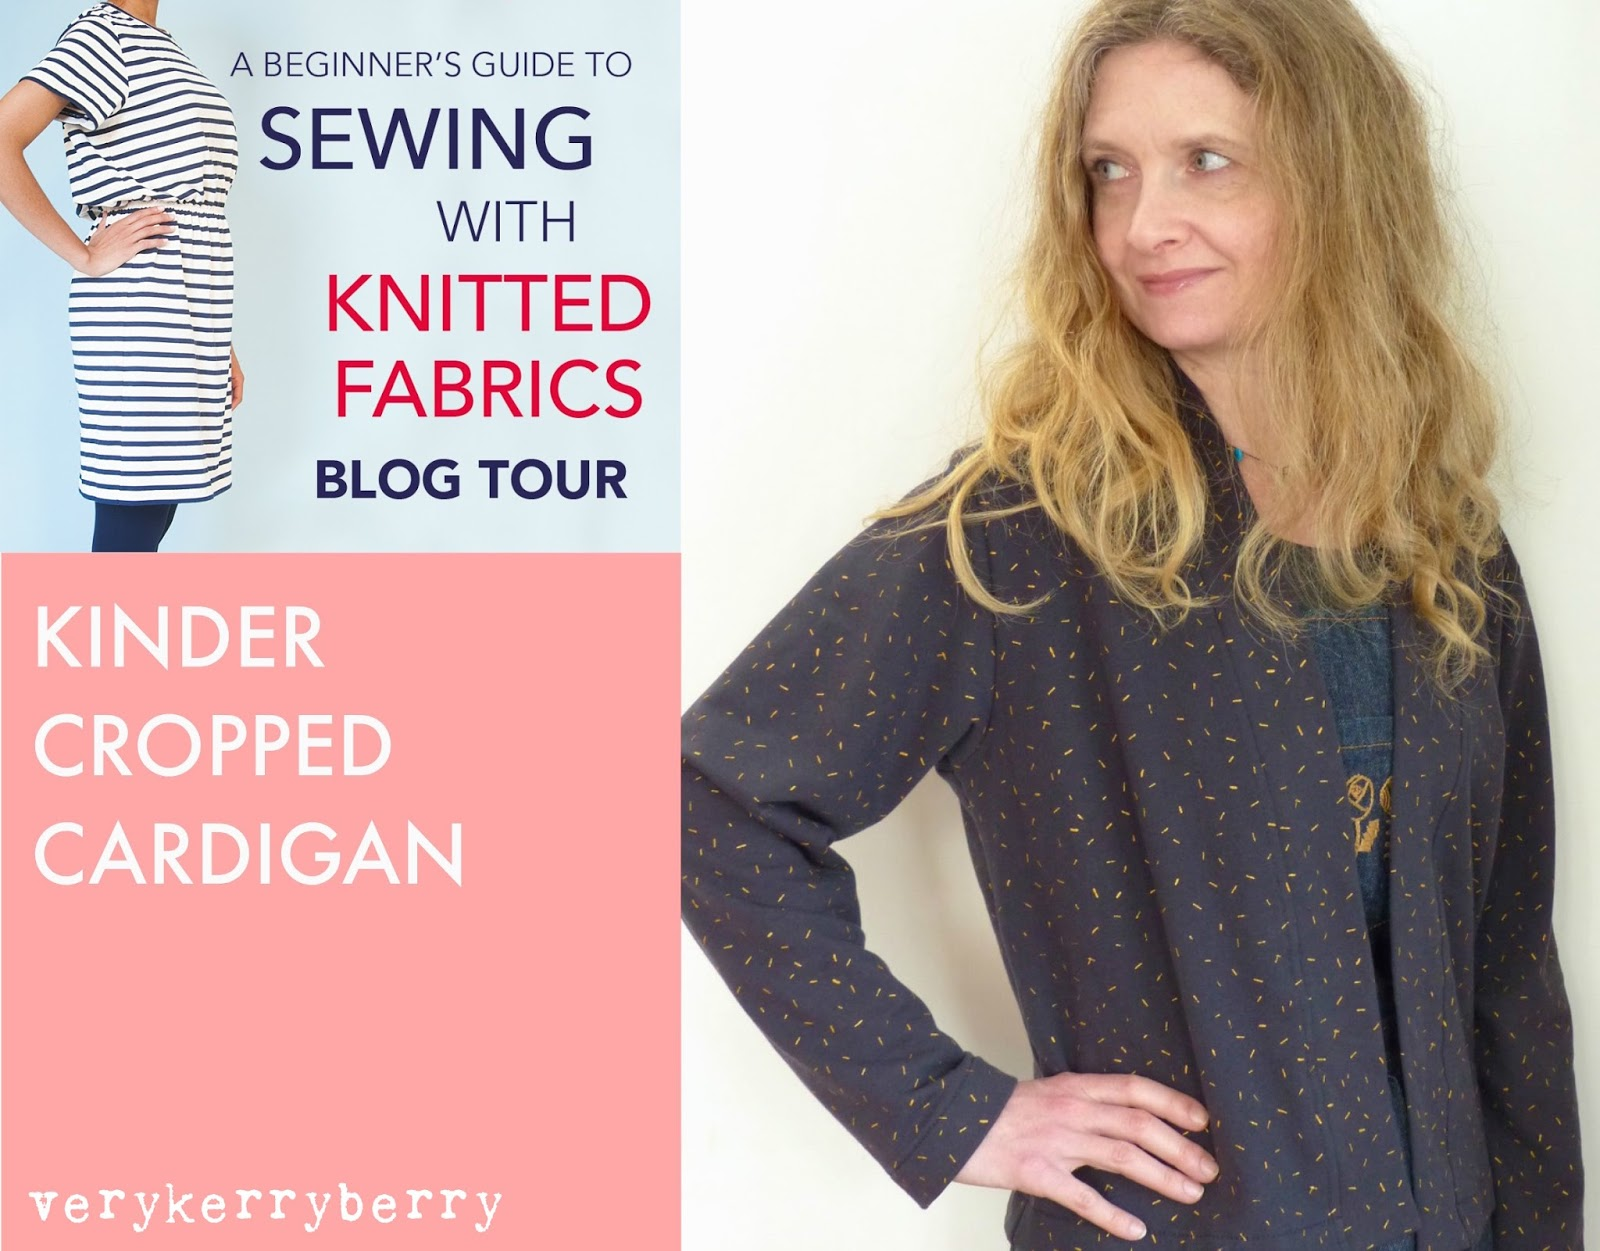 62391dda7f52 Wendy Ward s A Beginner s Guide to Sewing With Knits  Book Blog Tour ...